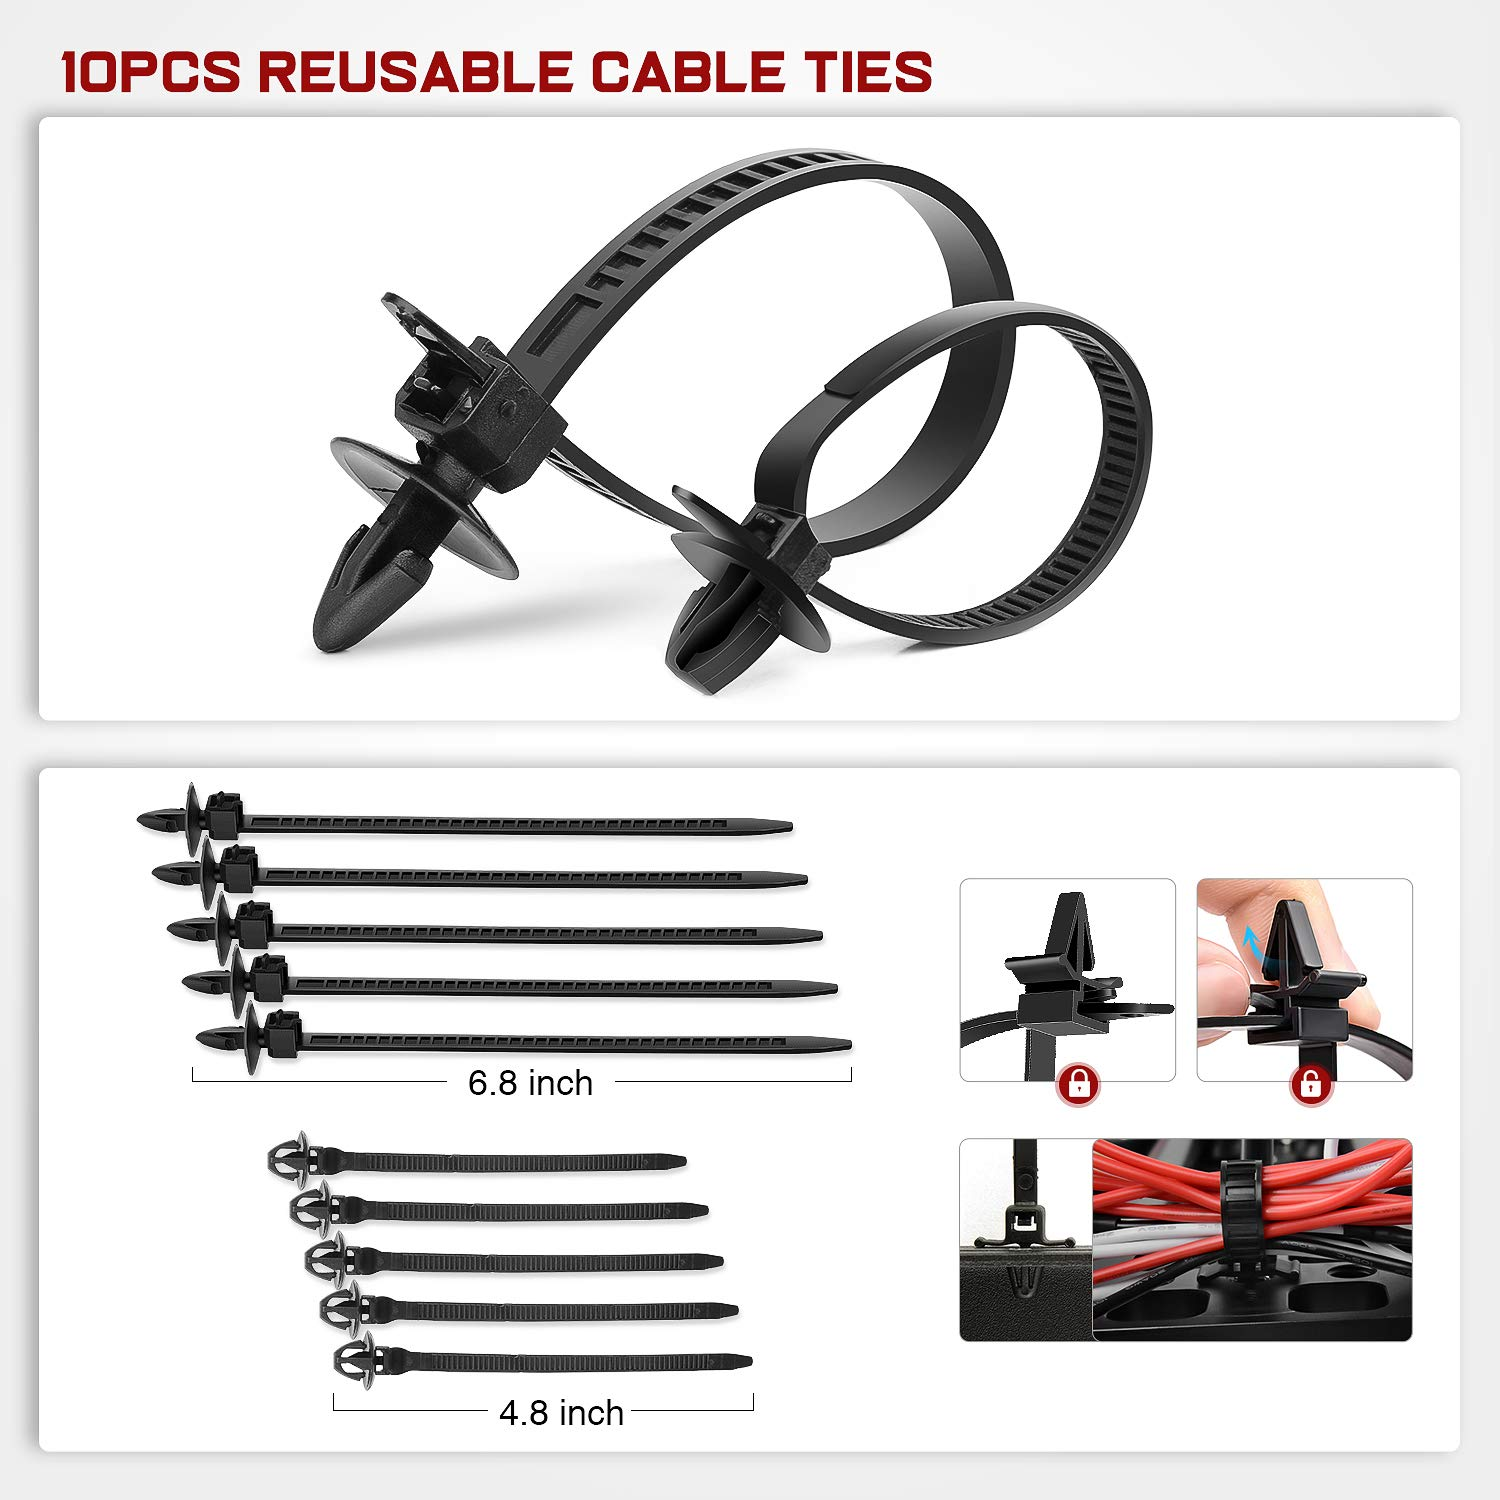 Nilight - CL-86 635Pcs Car Push Retainer Clips-16 Most Popular Sizes Nylon Bumper Fender Rivets Kit with 10 Cable Ties and Fasteners Remover for Toyota GM Ford Honda Acura Chrysler